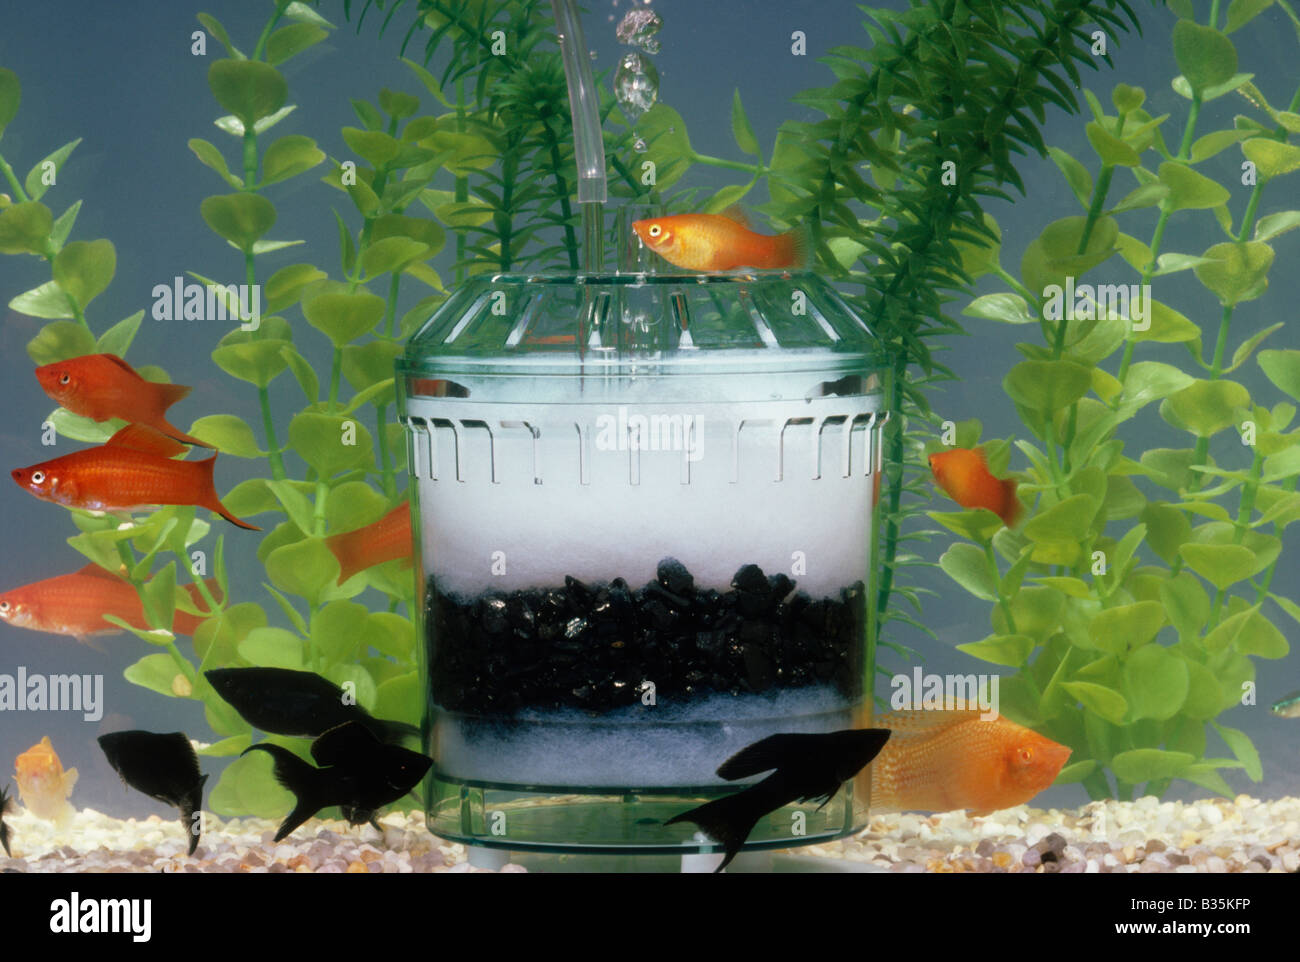 aerating and filtering aquarium with carbon filter stock photo